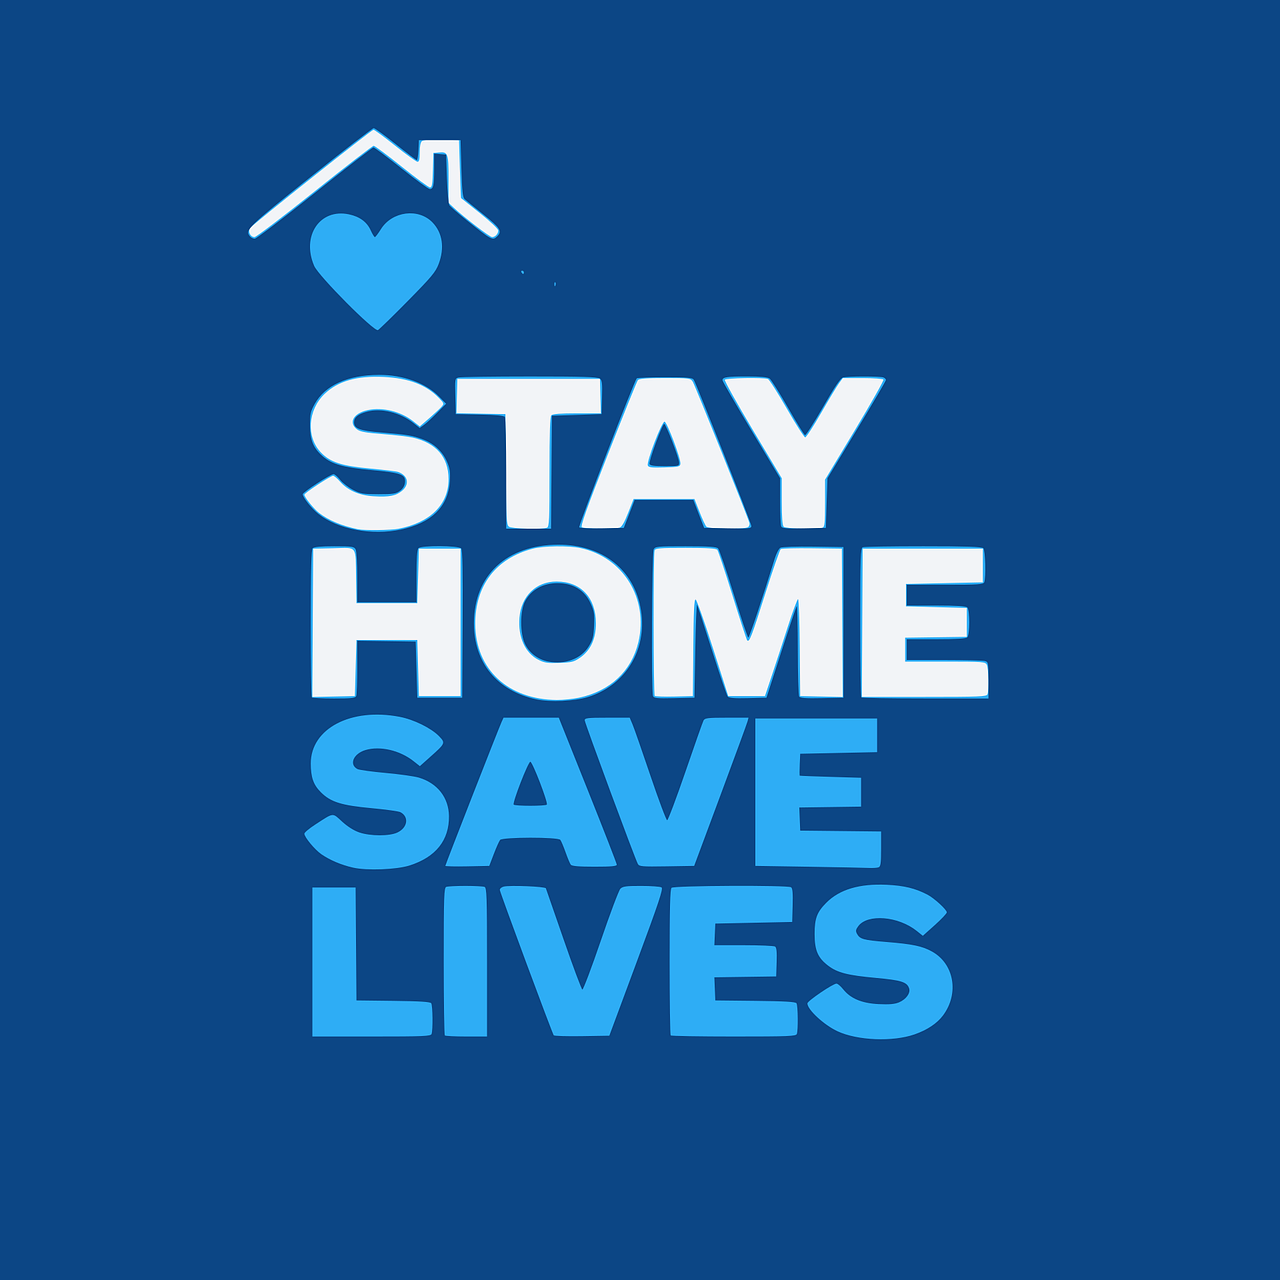 The first of our pandemic priorities is to stay home and save lives.